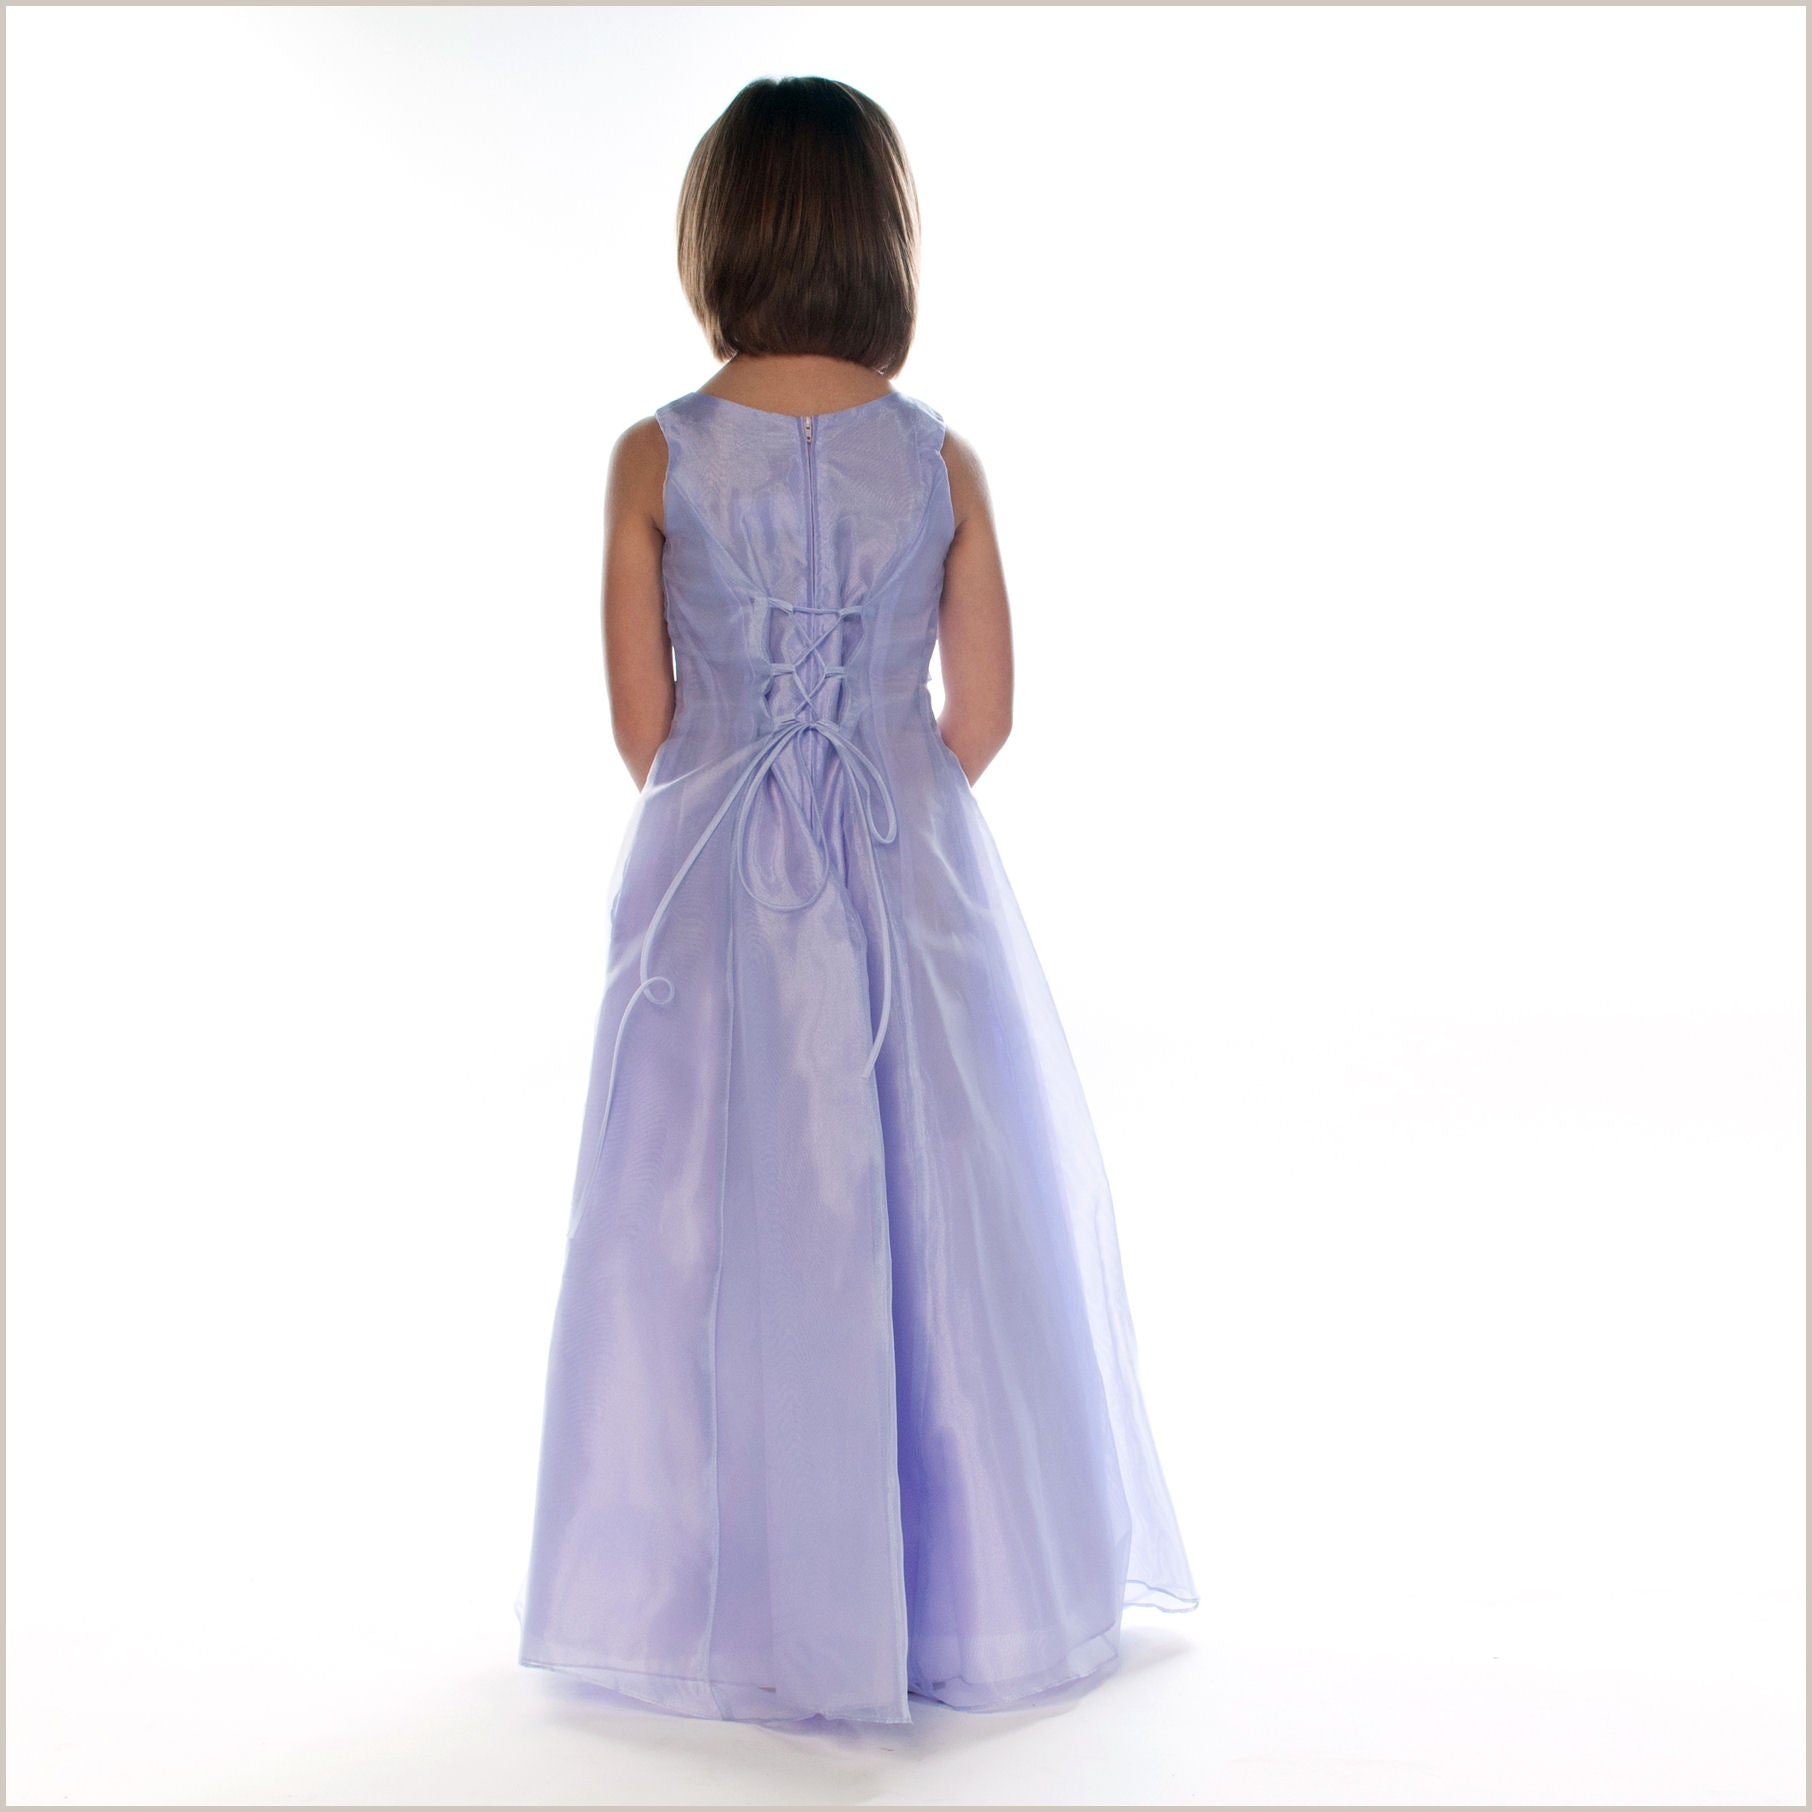 Grace lilac embroidered junior bridesmaid dress 6 8 10 12 14 years grace lilac embroidered junior bridesmaid dress ombrellifo Choice Image